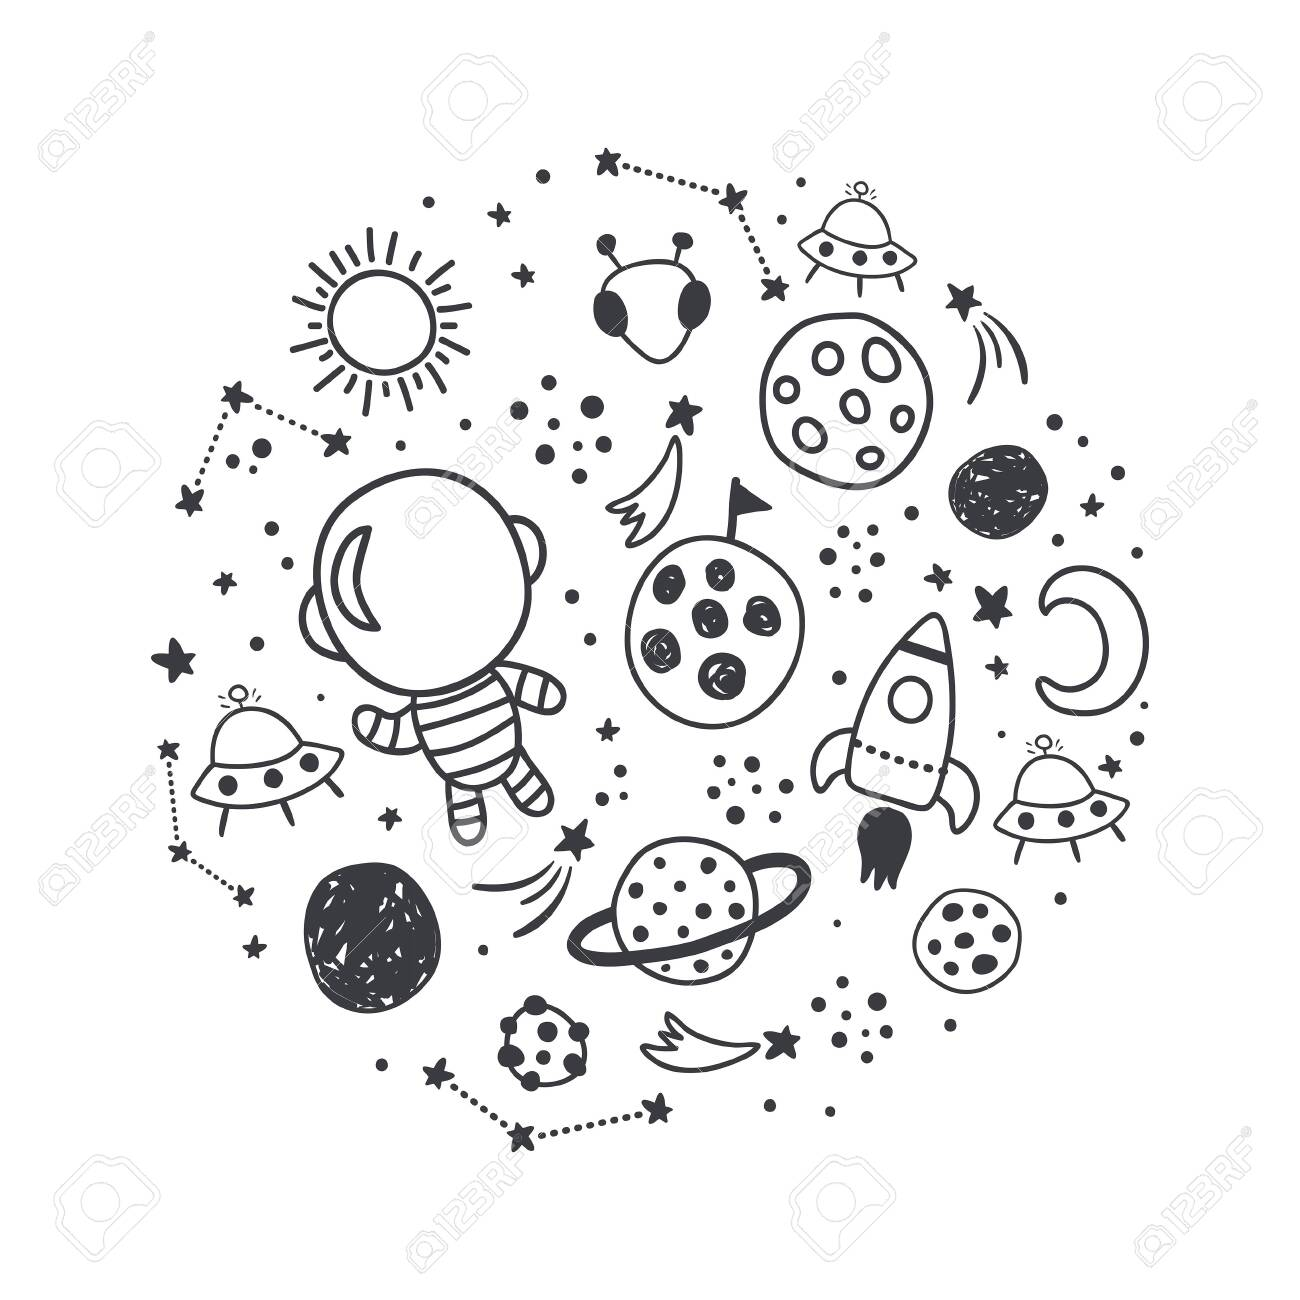 vector illustration, space related images arranged in a circle - 146439590